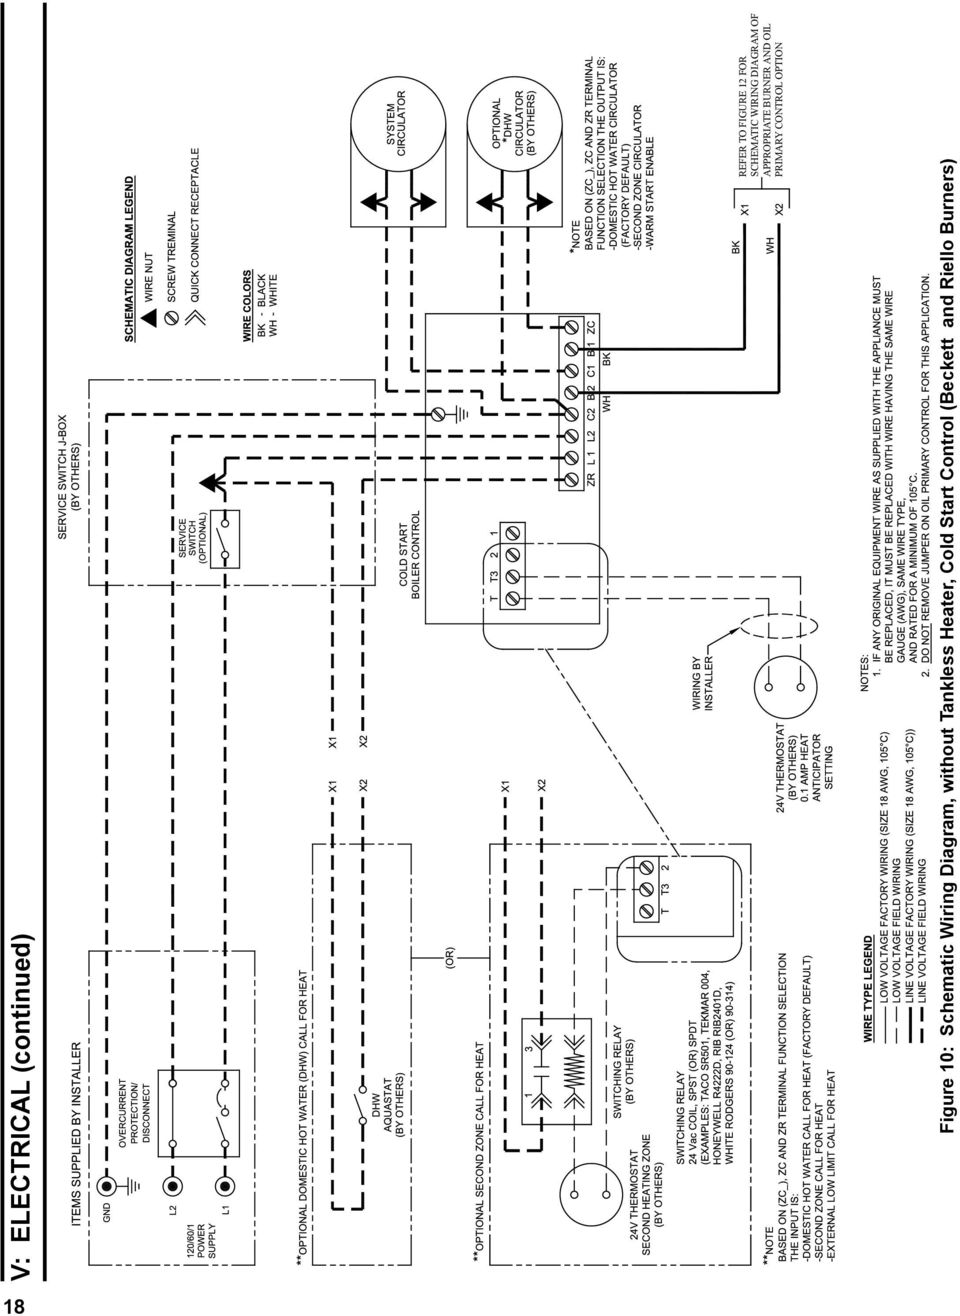 Installation Operating And Service Instructions Ap U Series Steel Taco Circulator 00 Wiring Diagram Control Option Figure 10 Schematic Without